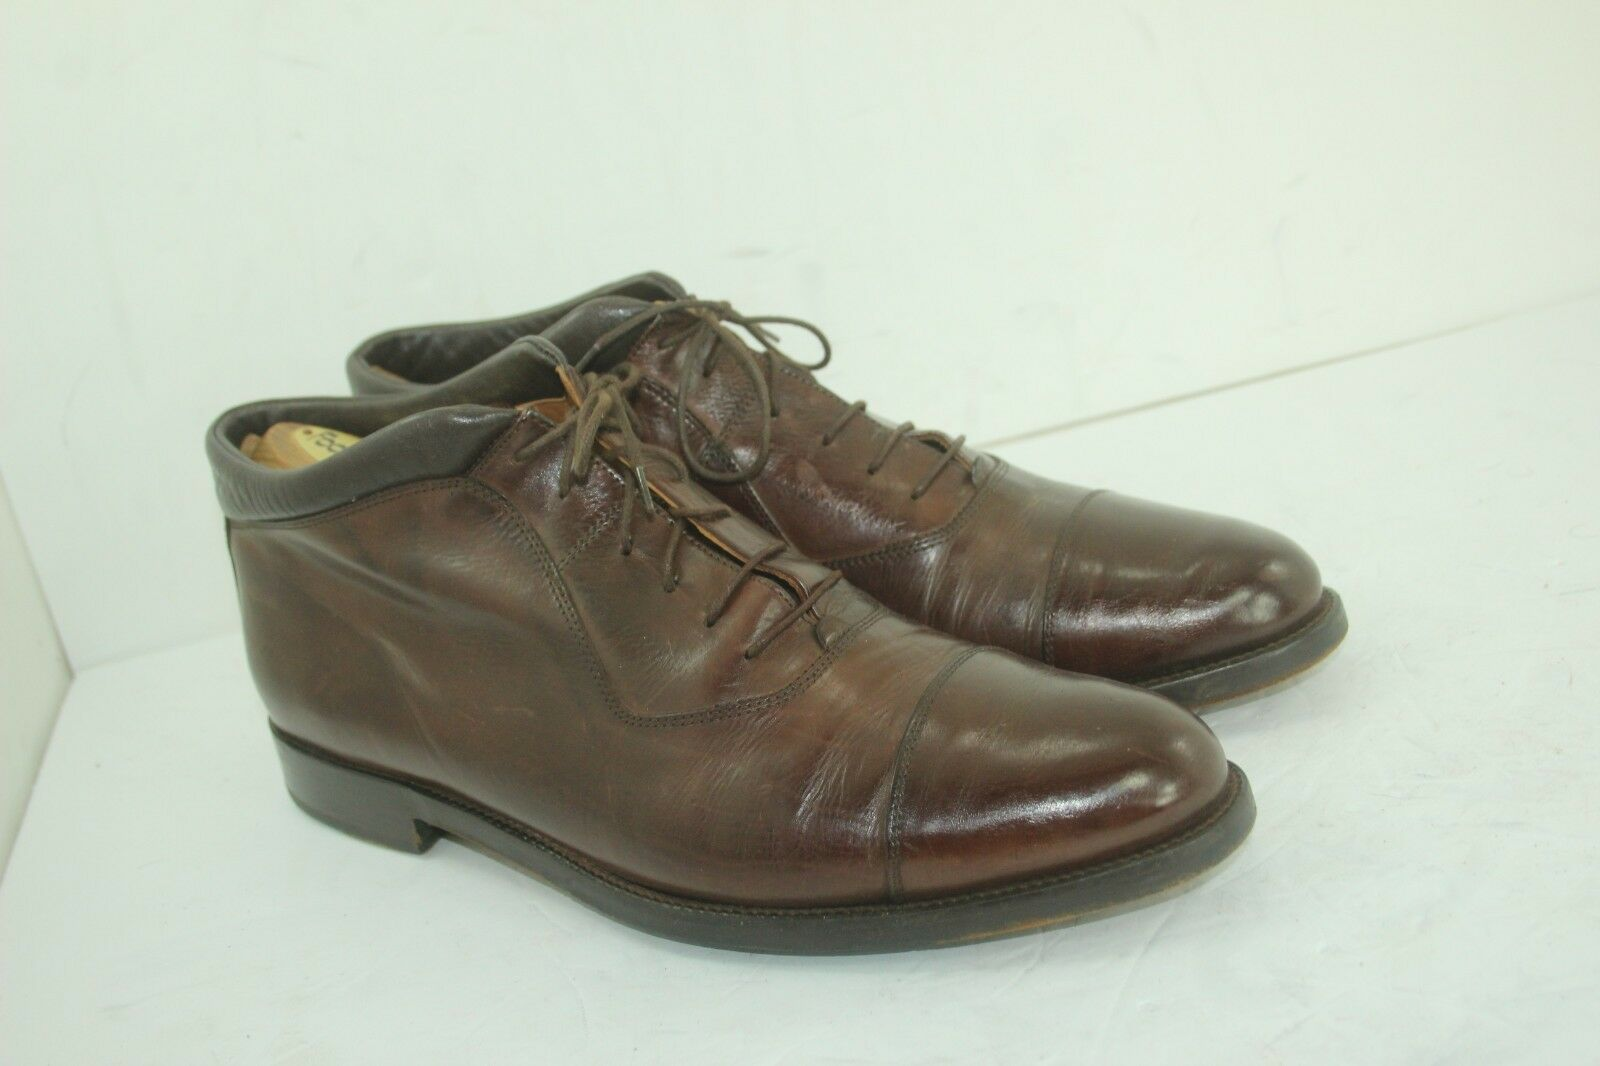 JOHNSTON MURPHY DOMANI BOOTS SIZE 11.5 M BROWNS LEATHER IN GOOD CONDITION